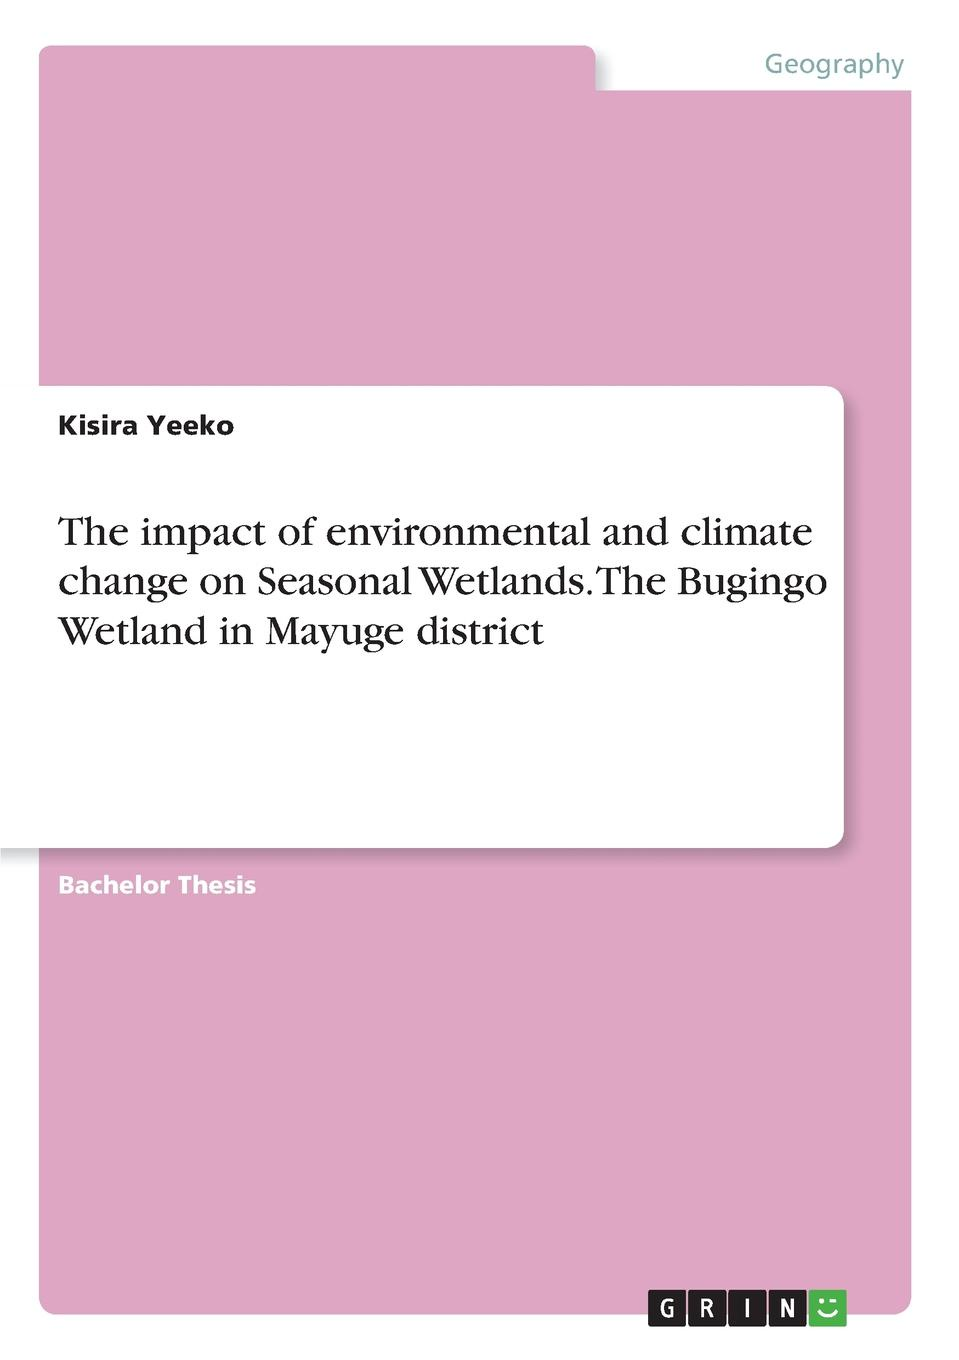 Kisira Yeeko The impact of environmental and climate change on Seasonal Wetlands. The Bugingo Wetland in Mayuge district ana lopez modelling the impact of climate change on water resources